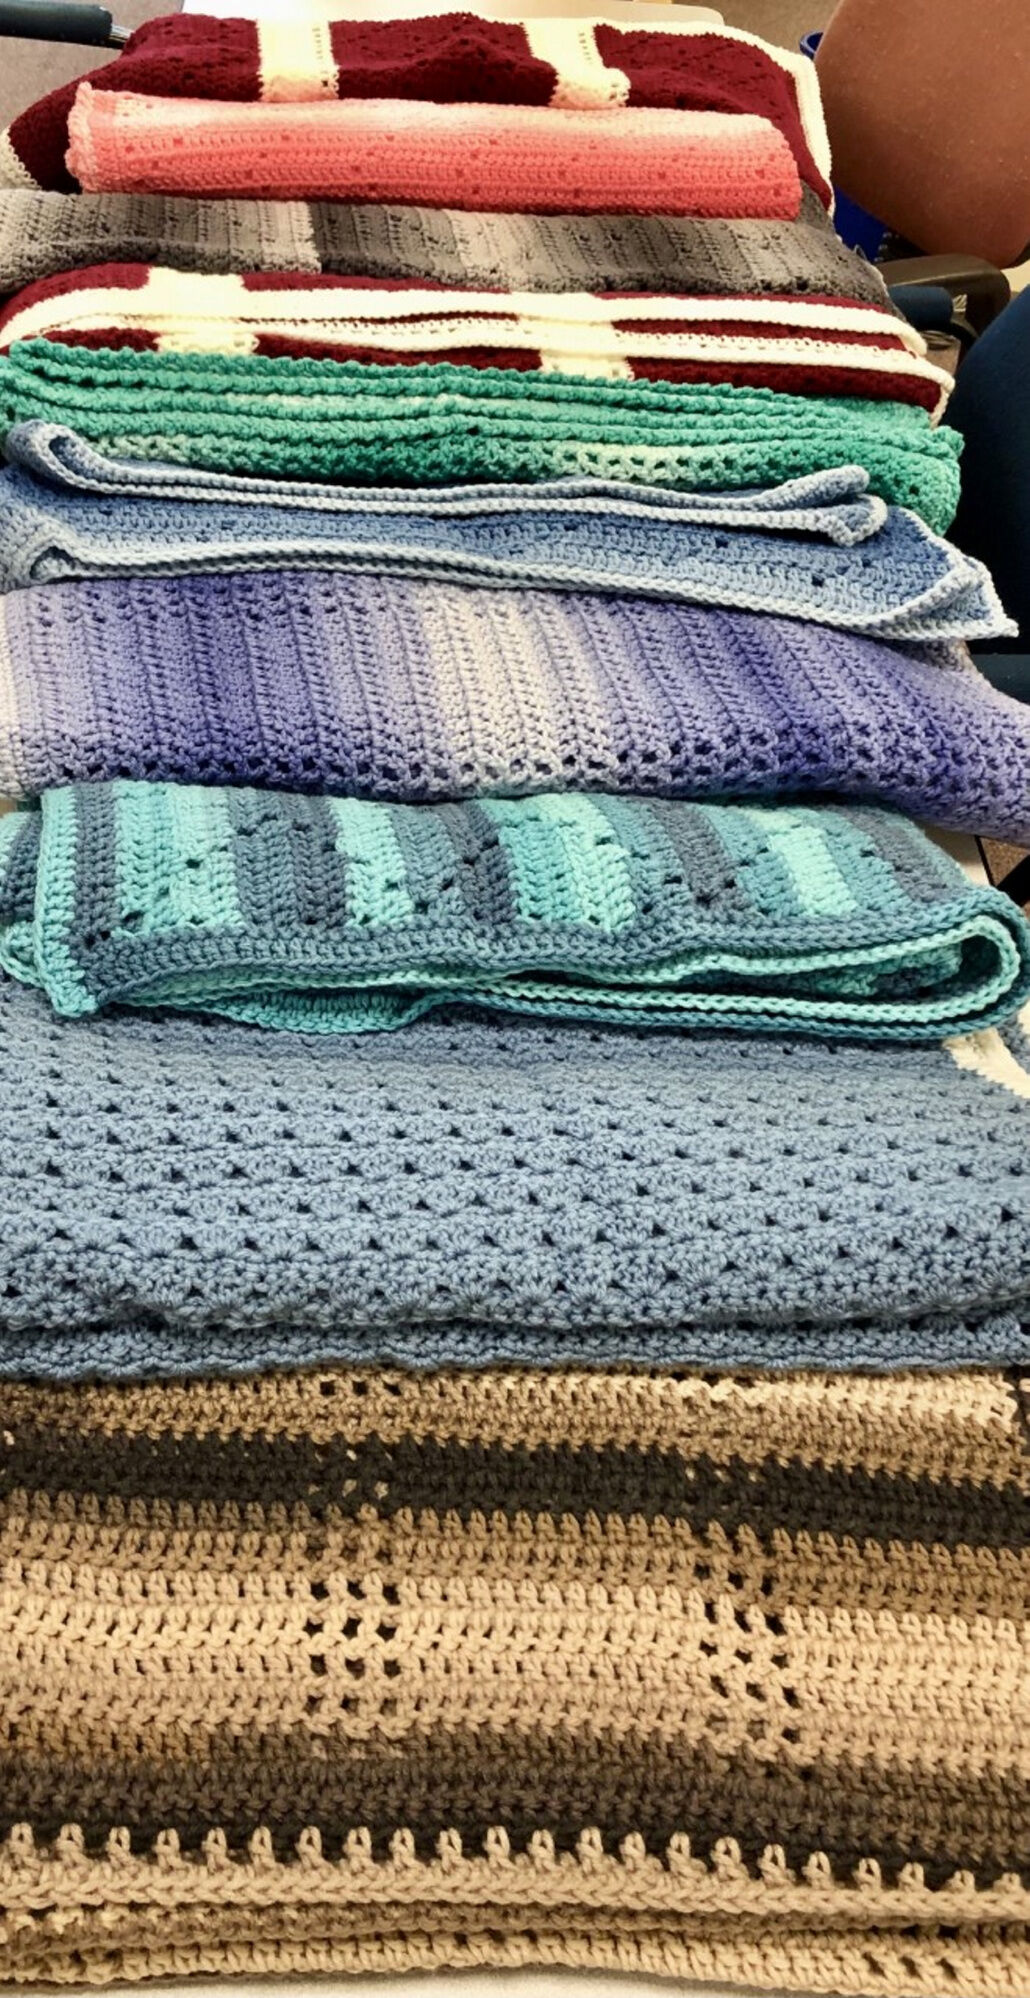 Alm donates 'lapghans' to Friends Of Oswego County Hospice